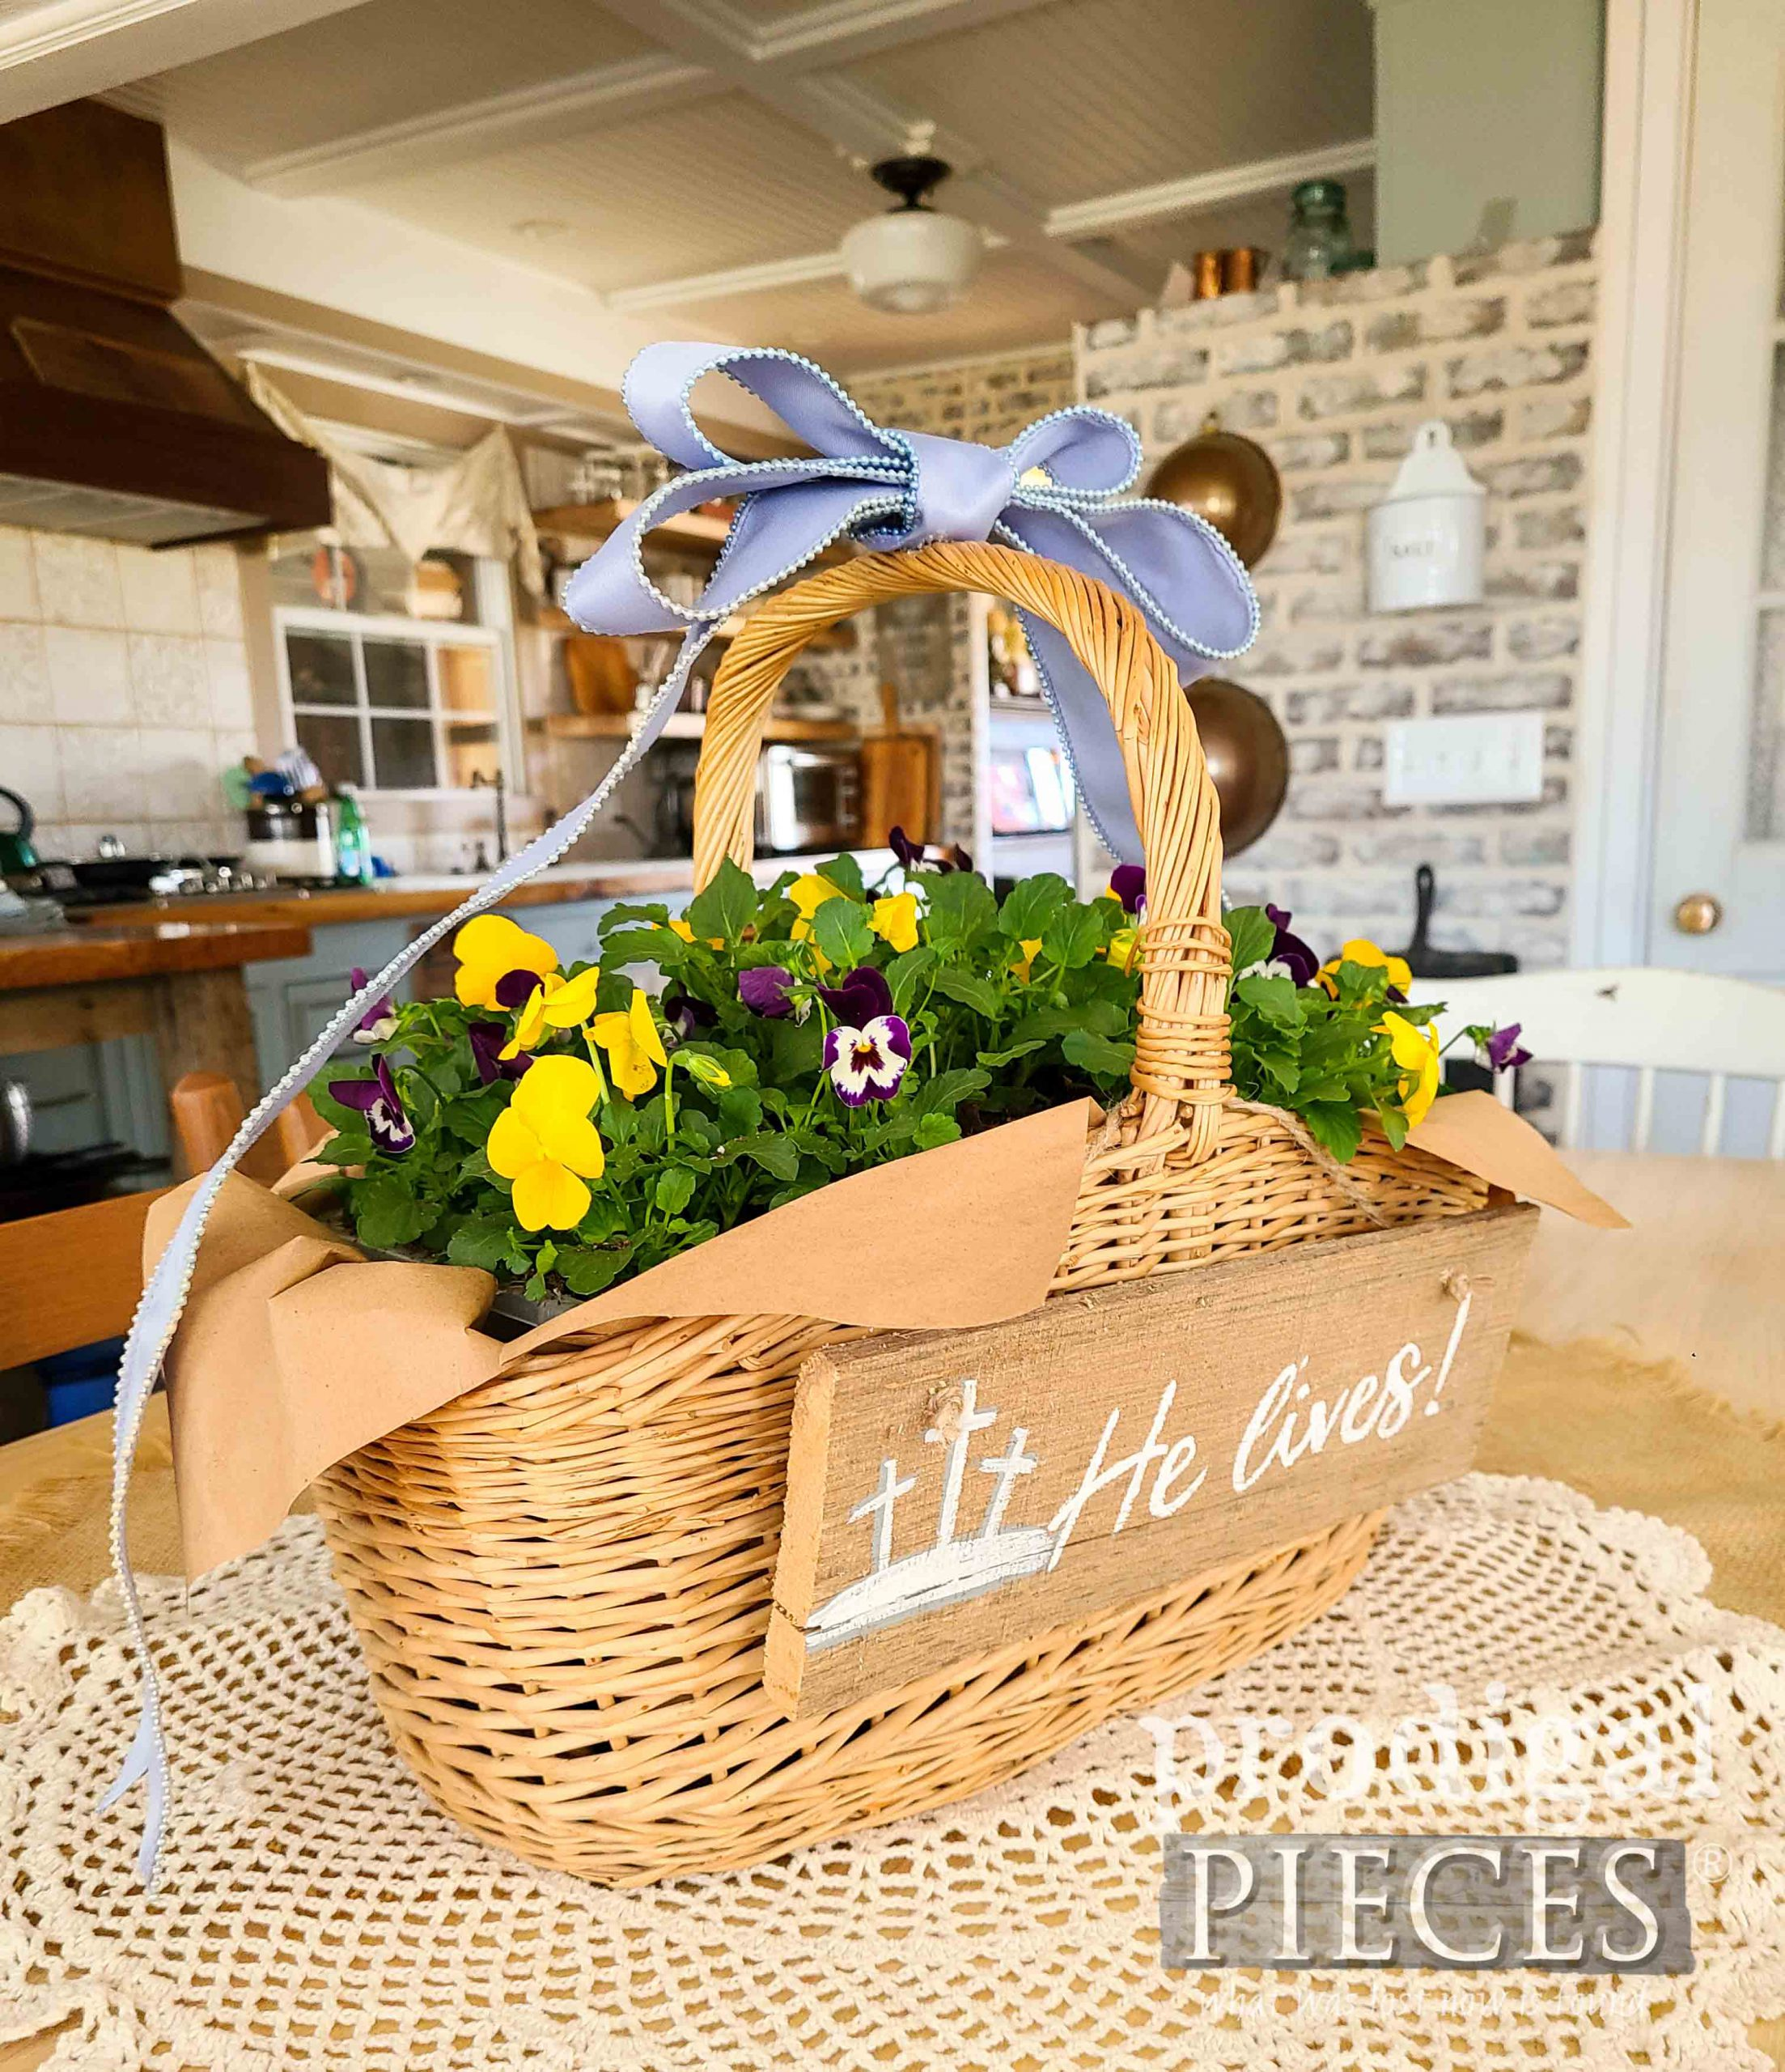 DIY Spring Easter Centerpiece by Larissa of Prodigal Pieces | prodigalpieces.com #prodigalpieces #spring #easter #diy #home